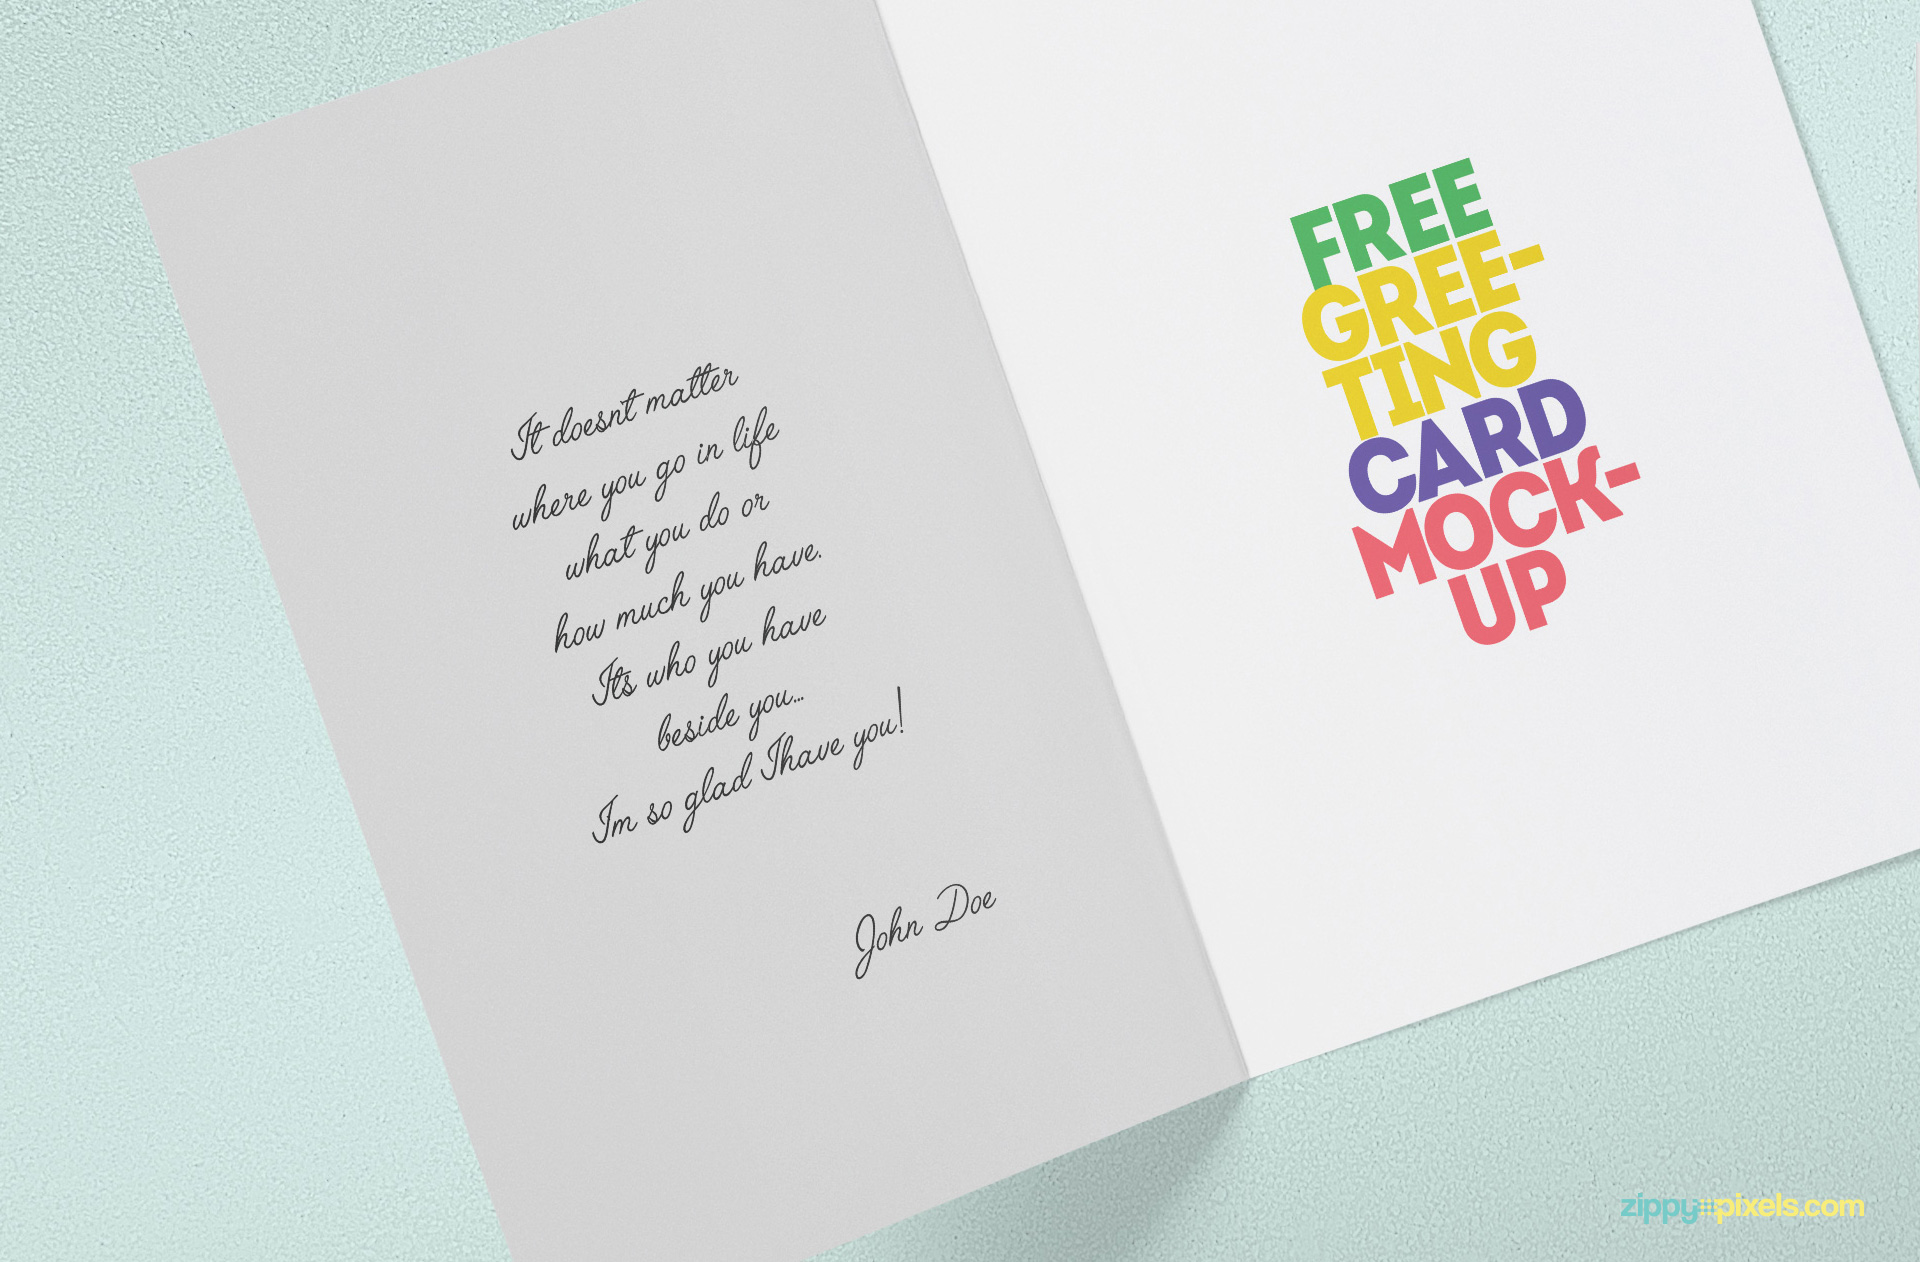 Smart Object Based Free Greeting Card Mock Up. Present Your Greeting Card  Designs And More